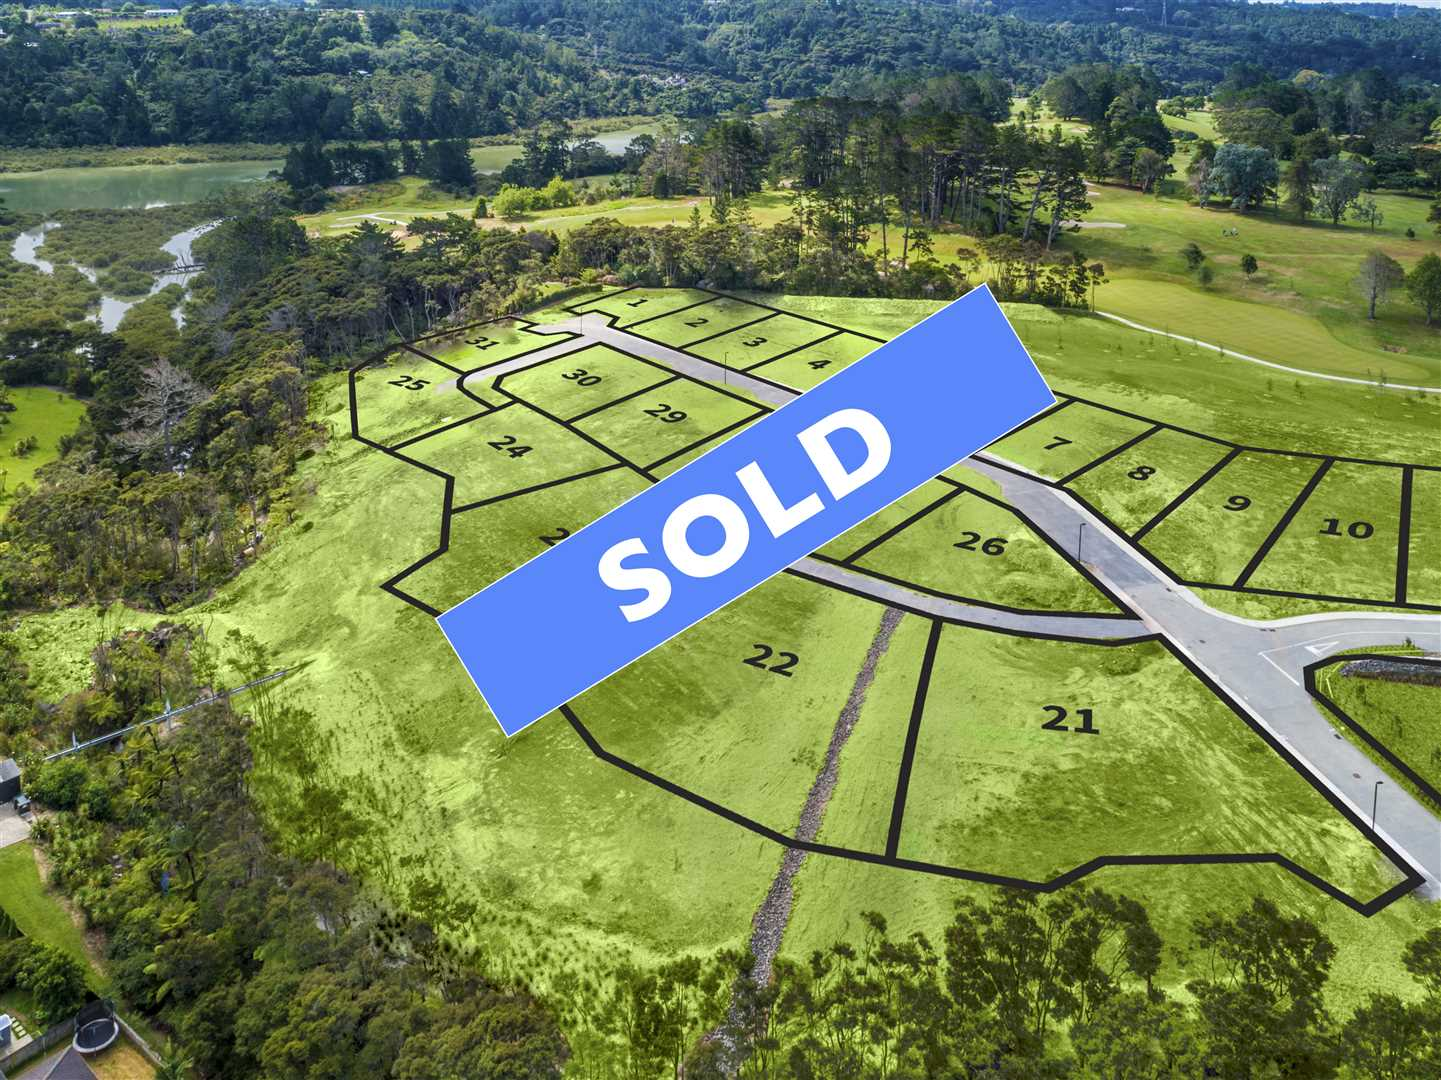 LOT 9 SOLD